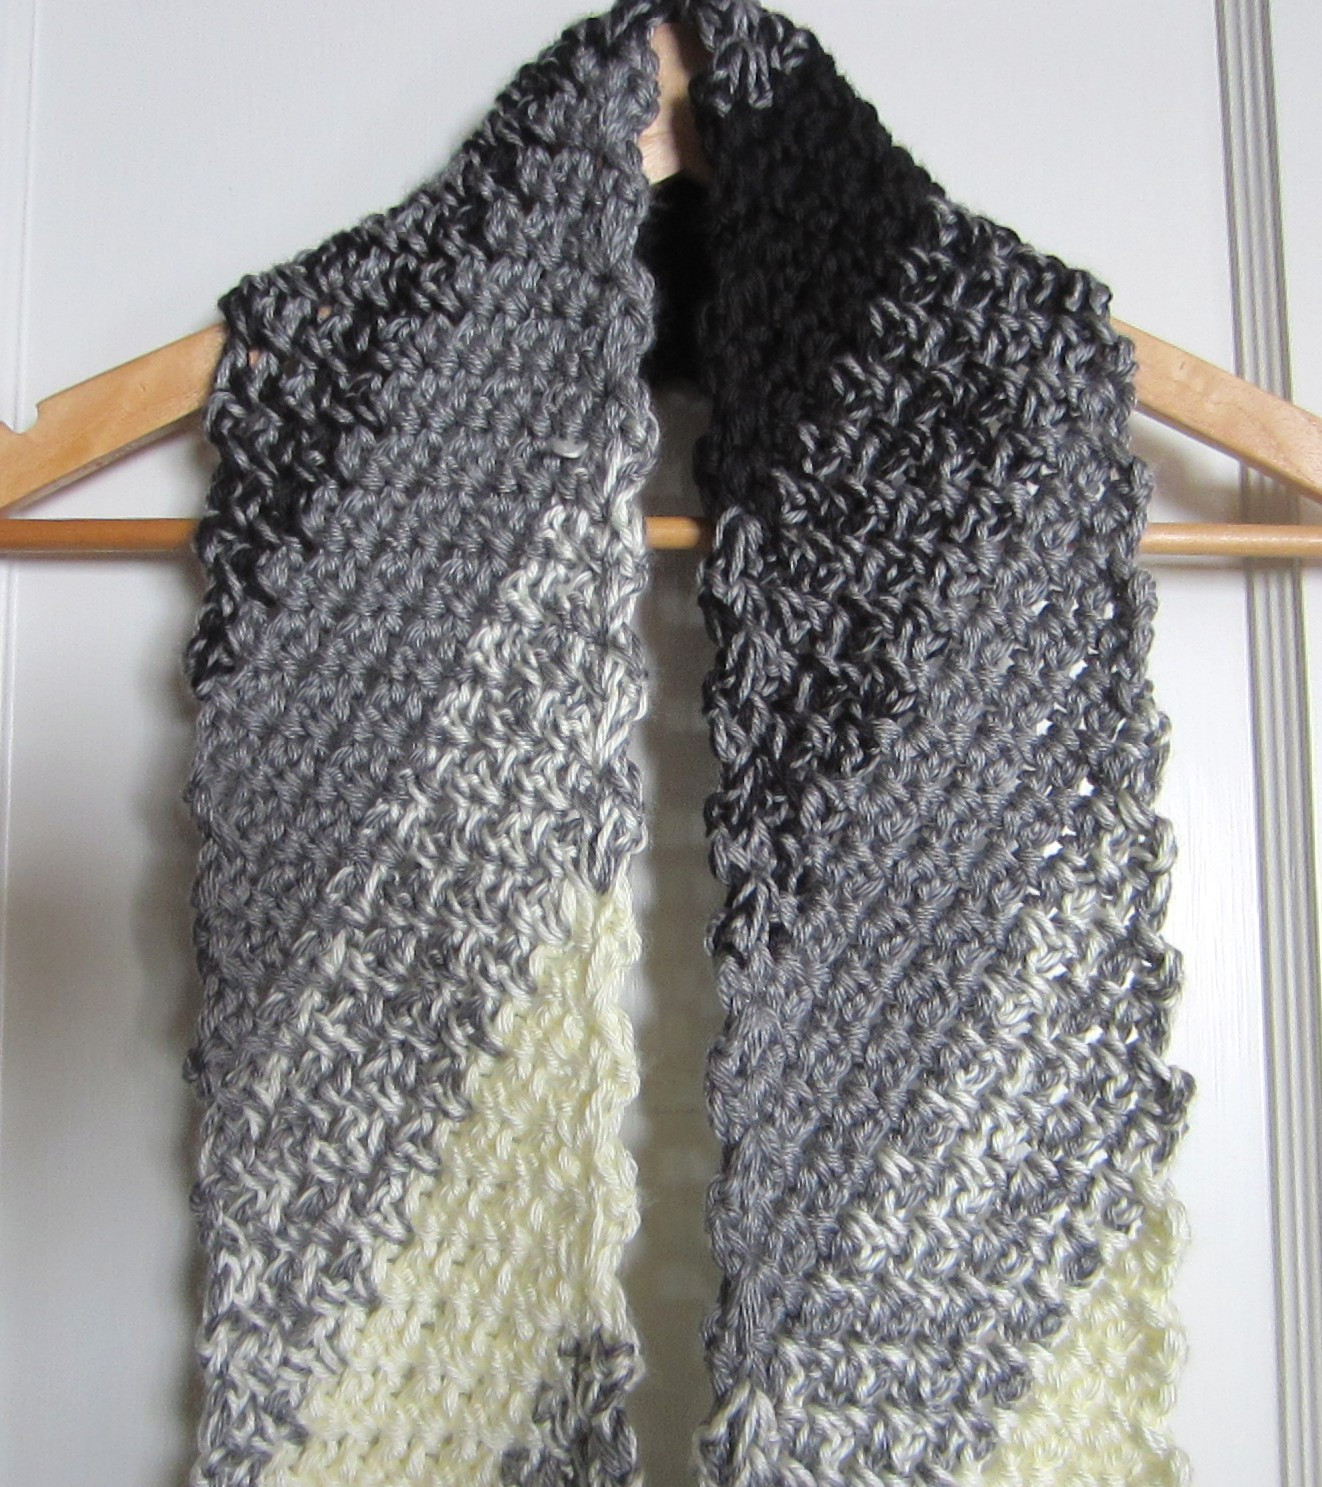 Crochet Scarf Elegant Crochet Scarf Black and White Diagonal 002 Of Incredible 48 Images Crochet Scarf